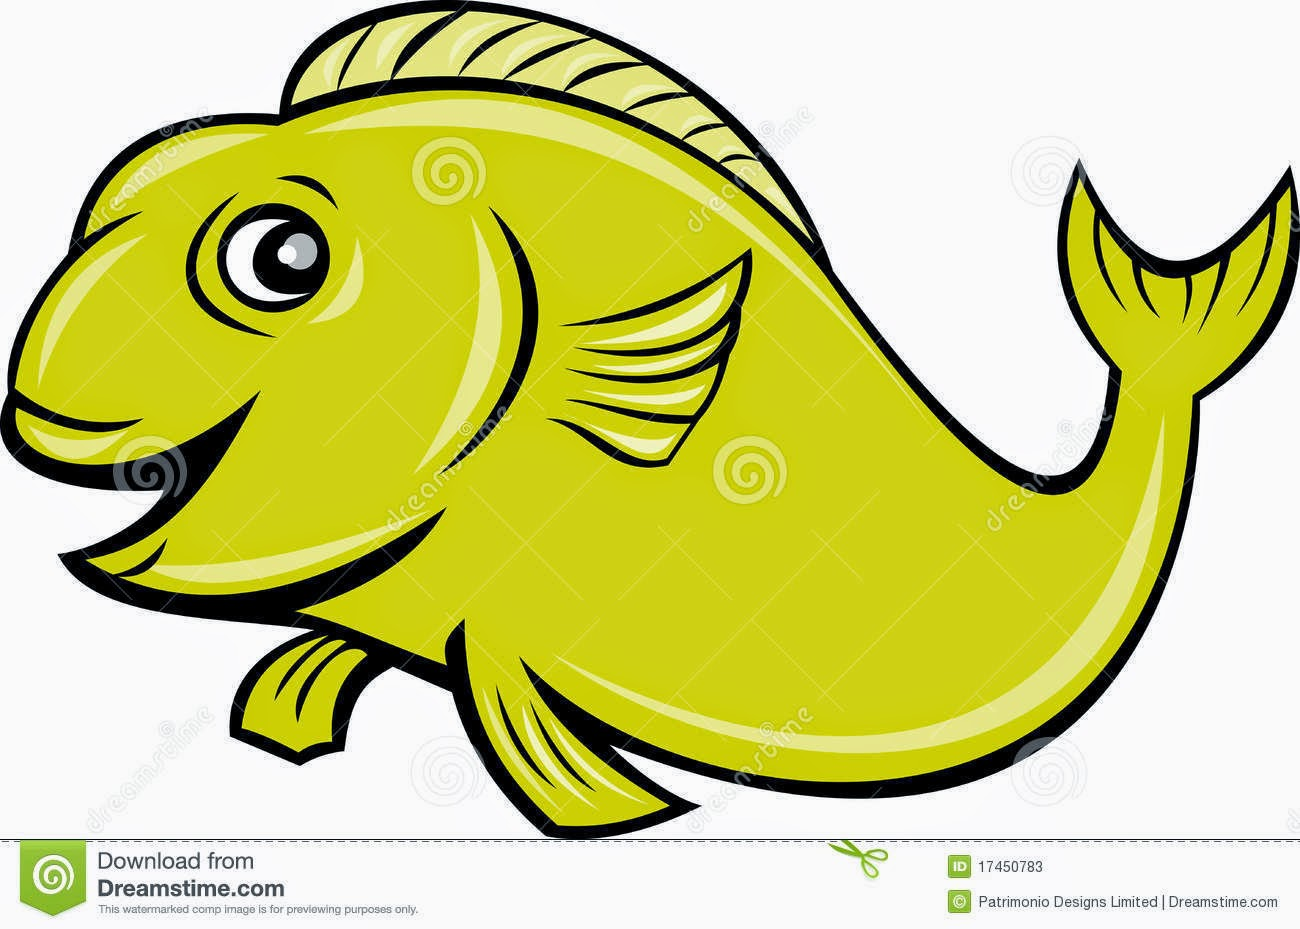 Cartoon Fish Images